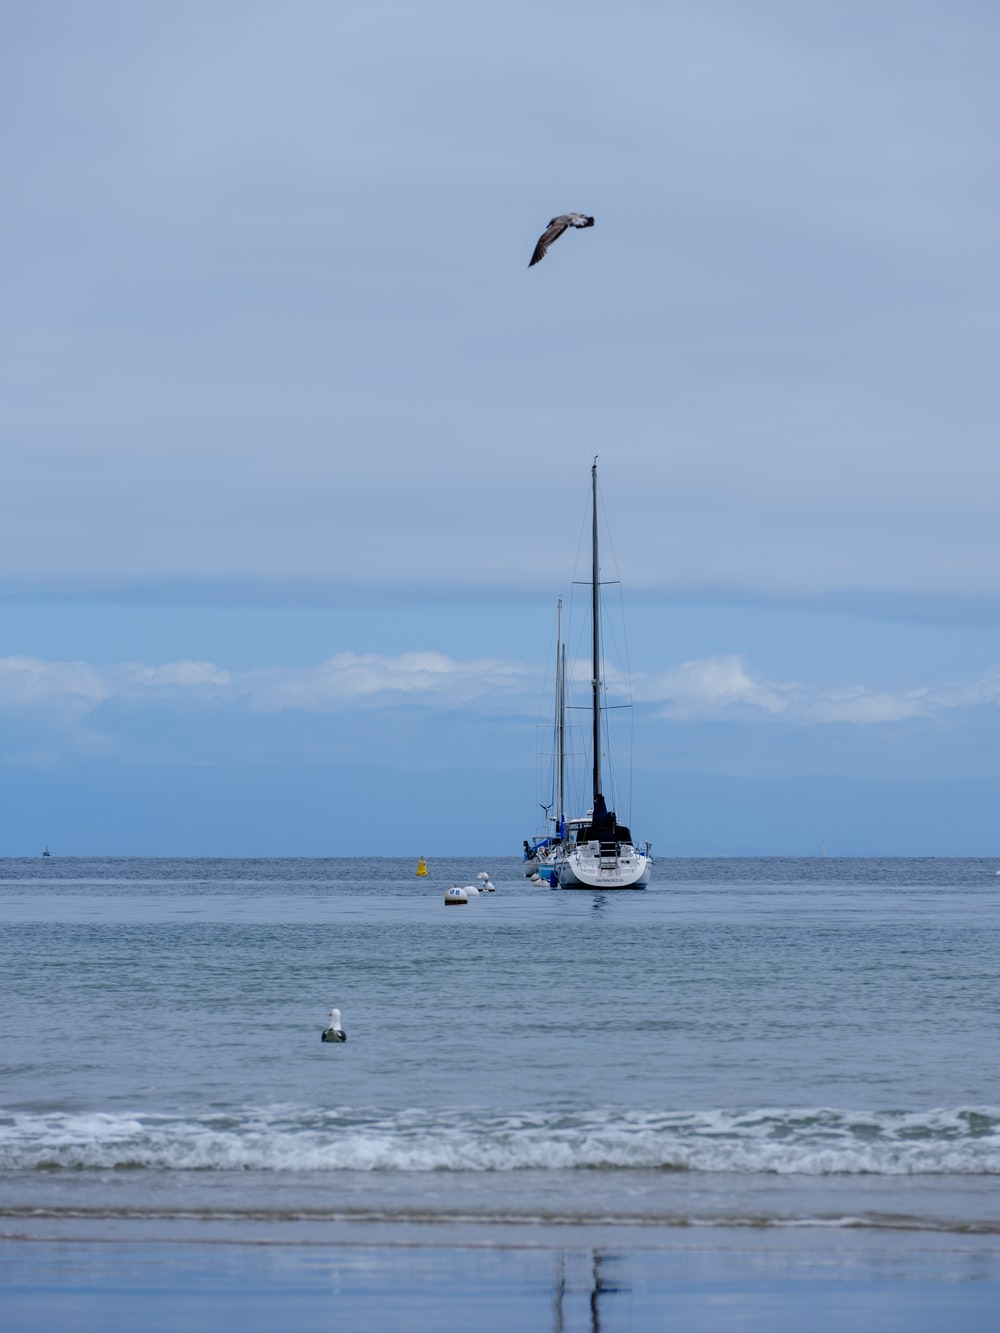 white and black sailboat on sea under white clouds during daytime